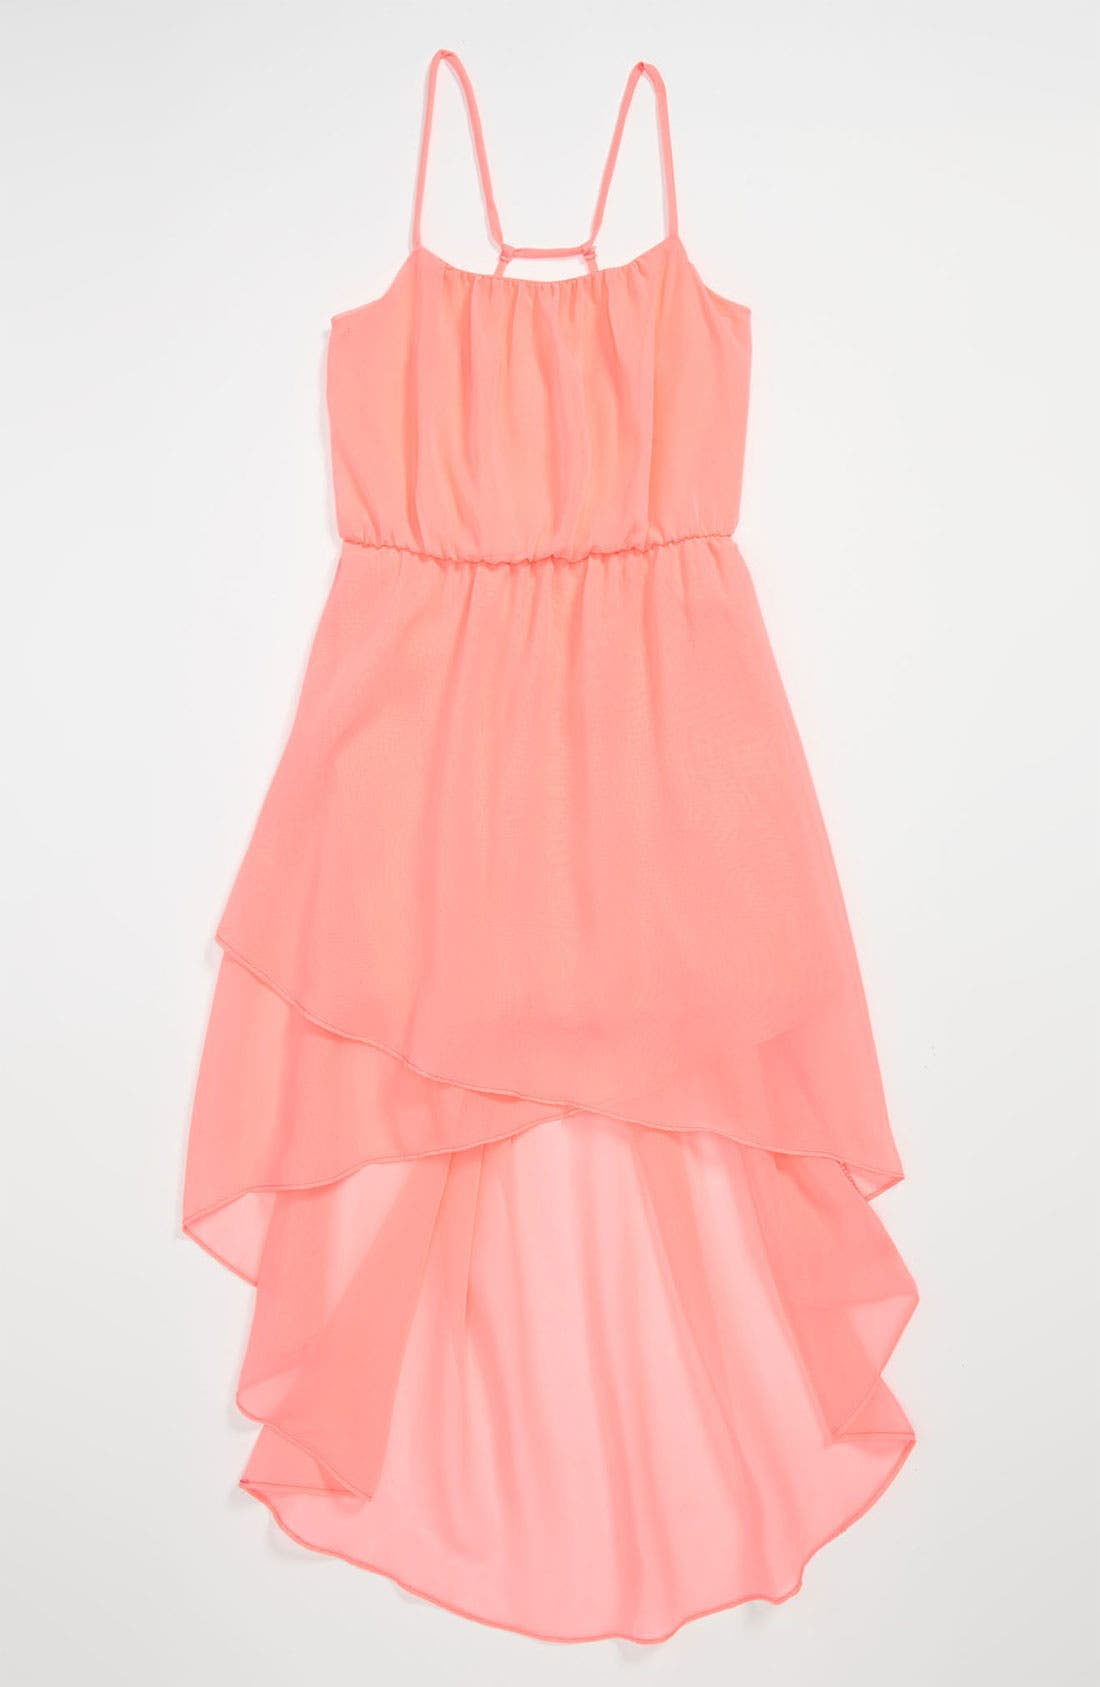 Alternate Image 1 Selected - Kiddo Spaghetti Strap High/Low Dress (Big Girls)